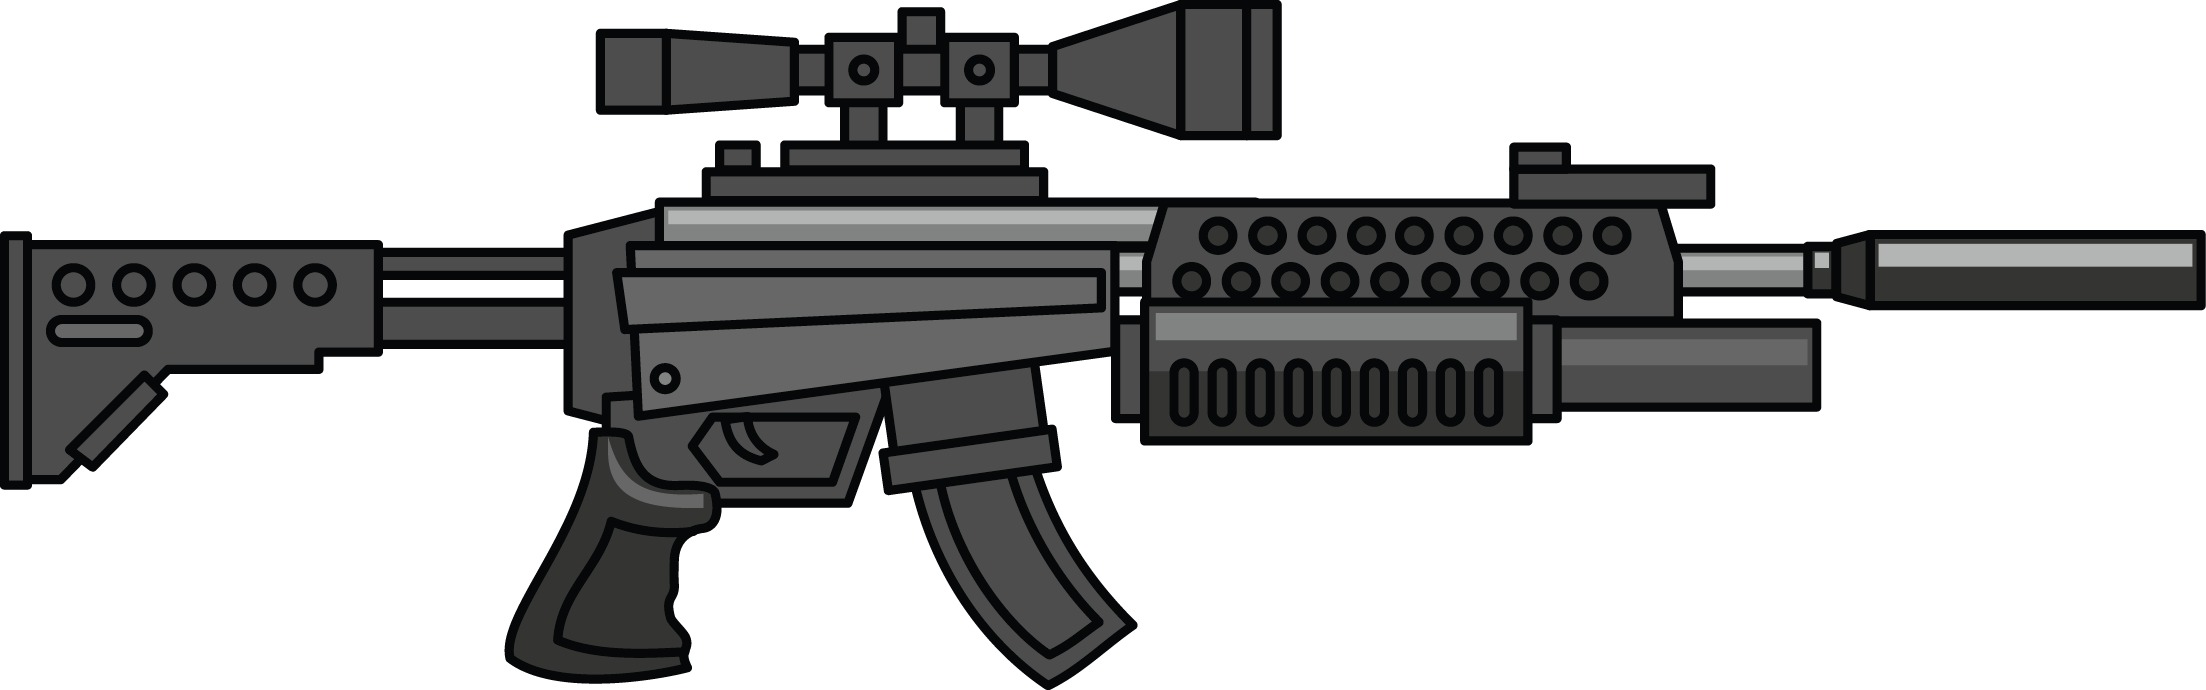 Machine Gun Clip Art.